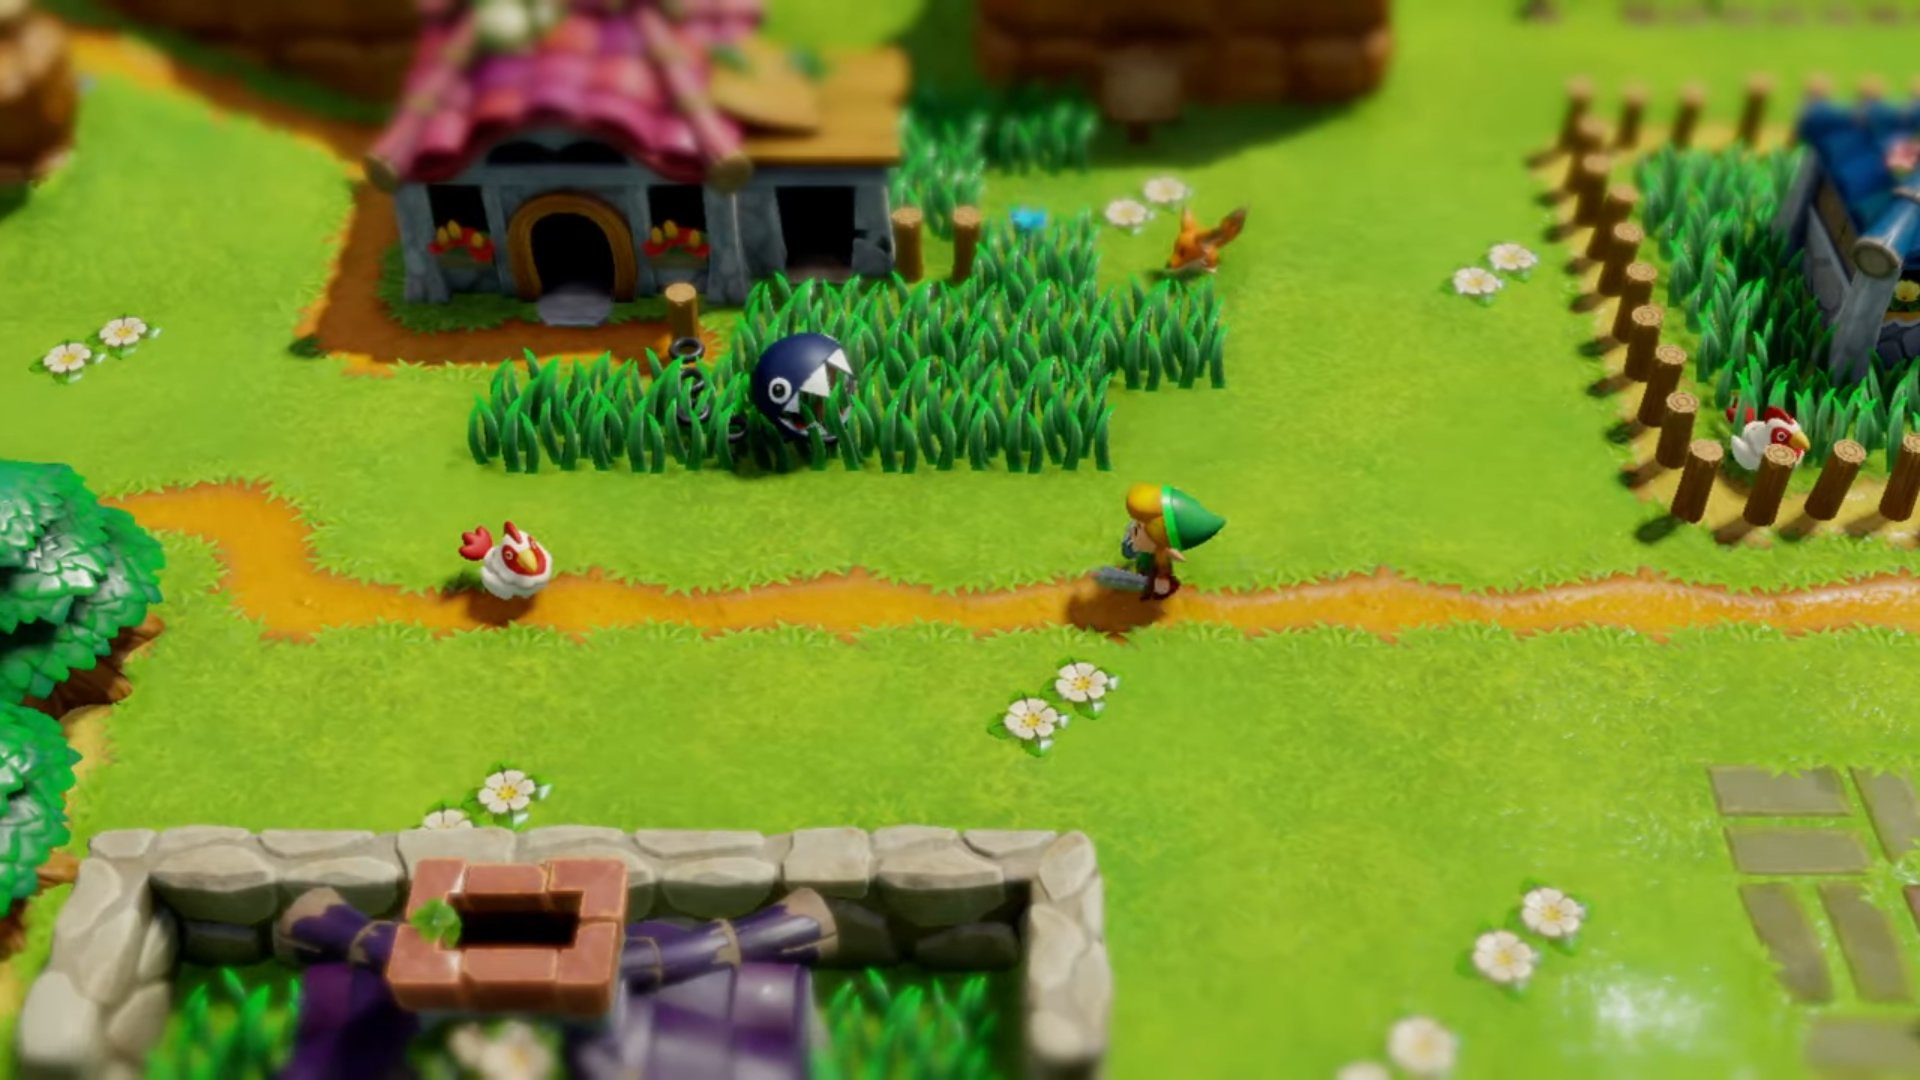 Asking the Million Rupee Question: How Much Will Link's Awakening on the Switch Cost?